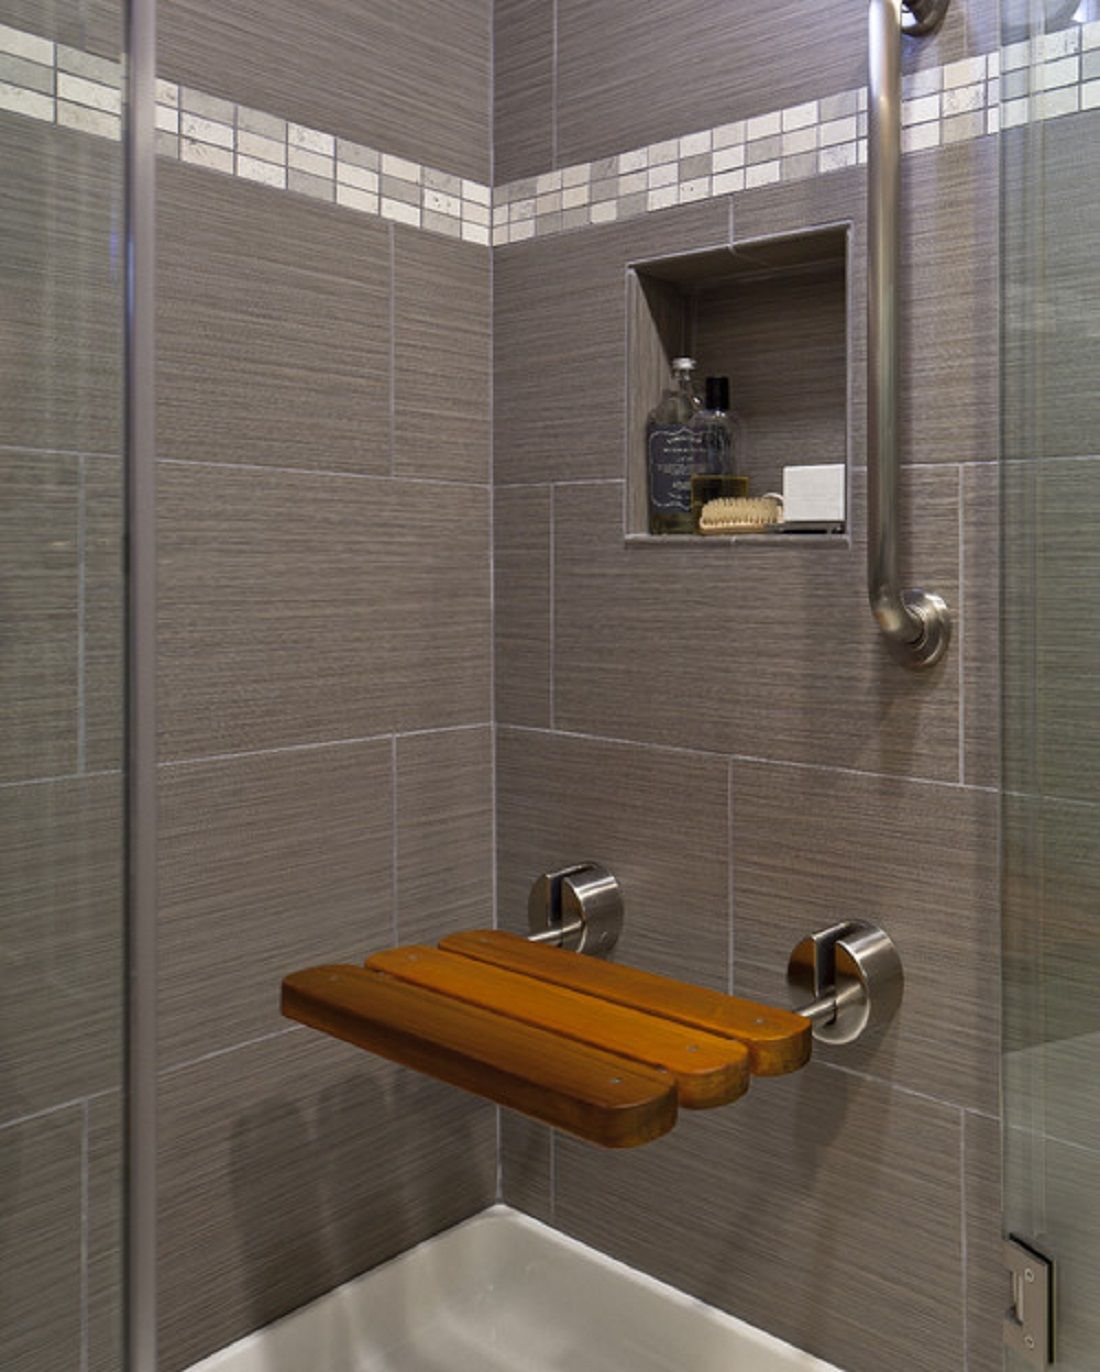 78  images about Swamy Shower Benches on Pinterest   Search  Shaving and Contemporary mirrors. 78  images about Swamy Shower Benches on Pinterest   Search